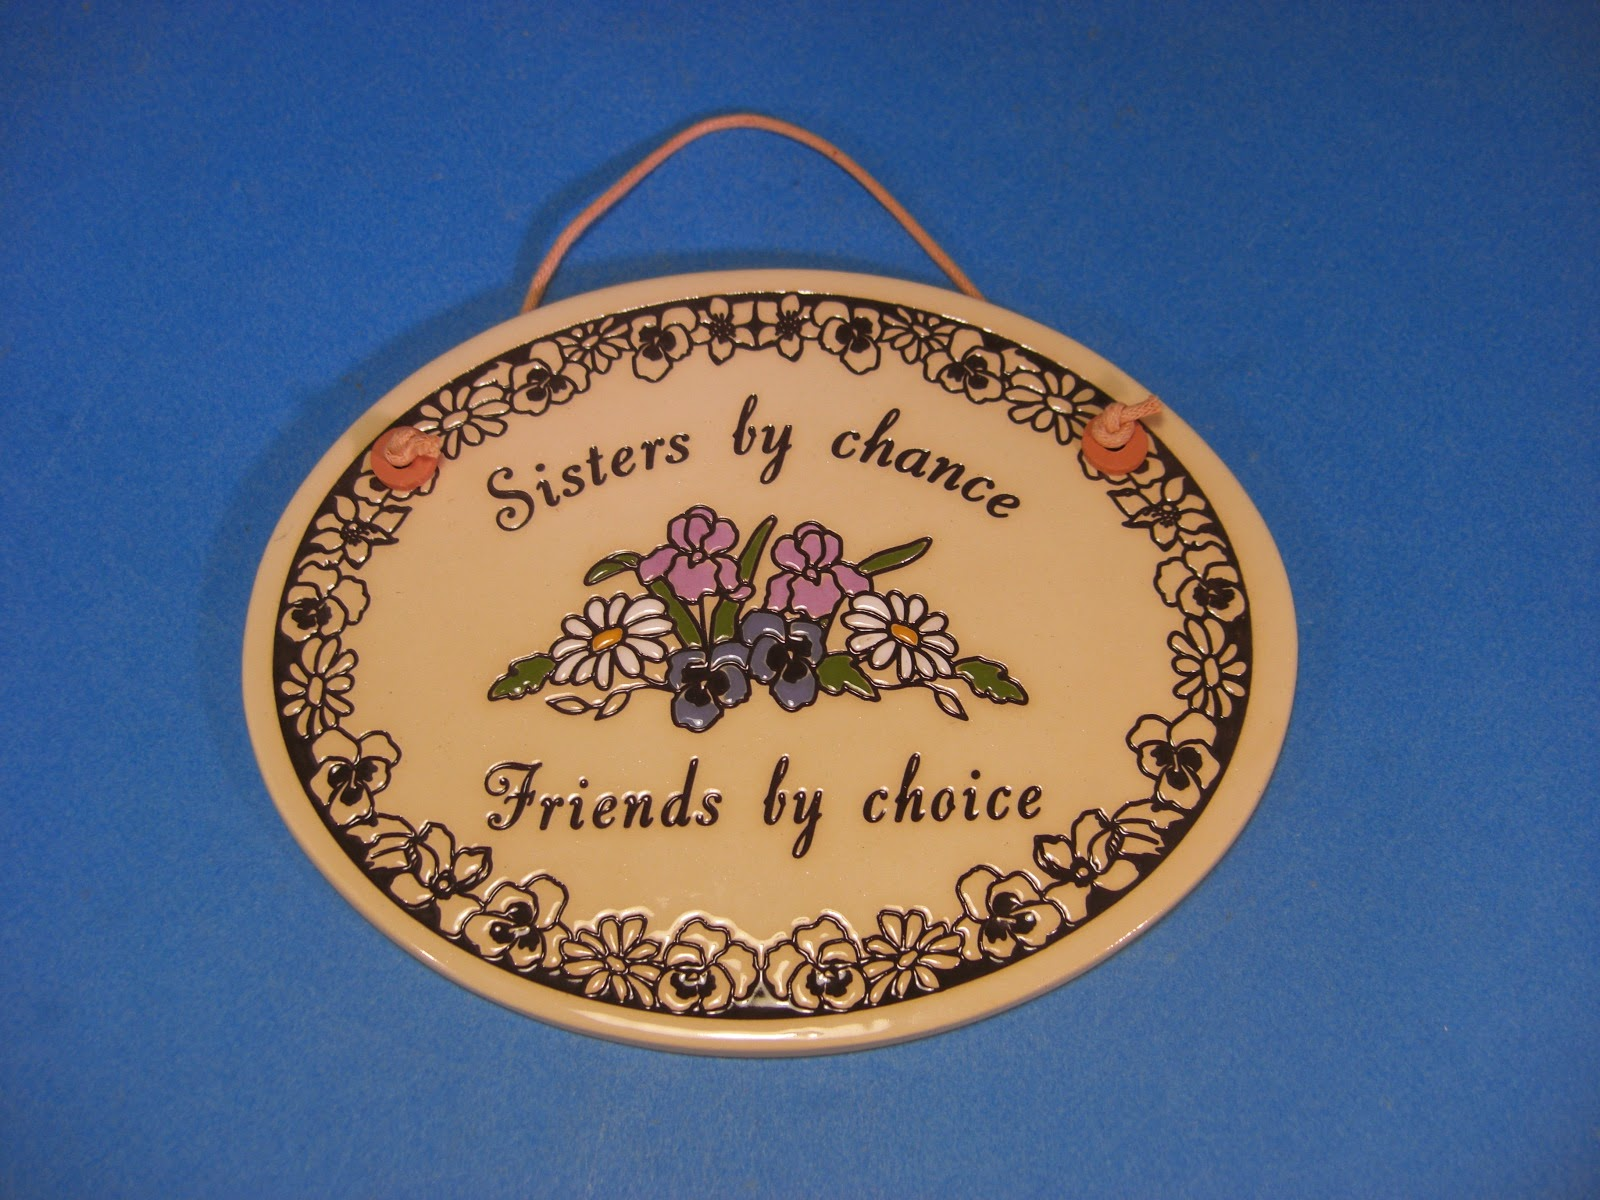 http://www.bonanza.com/listings/Trinity-Pottery-Made-in-the-USA-Ceramic-Wall-Plaque-Sisters-by-Chance-Friends-by/246446836